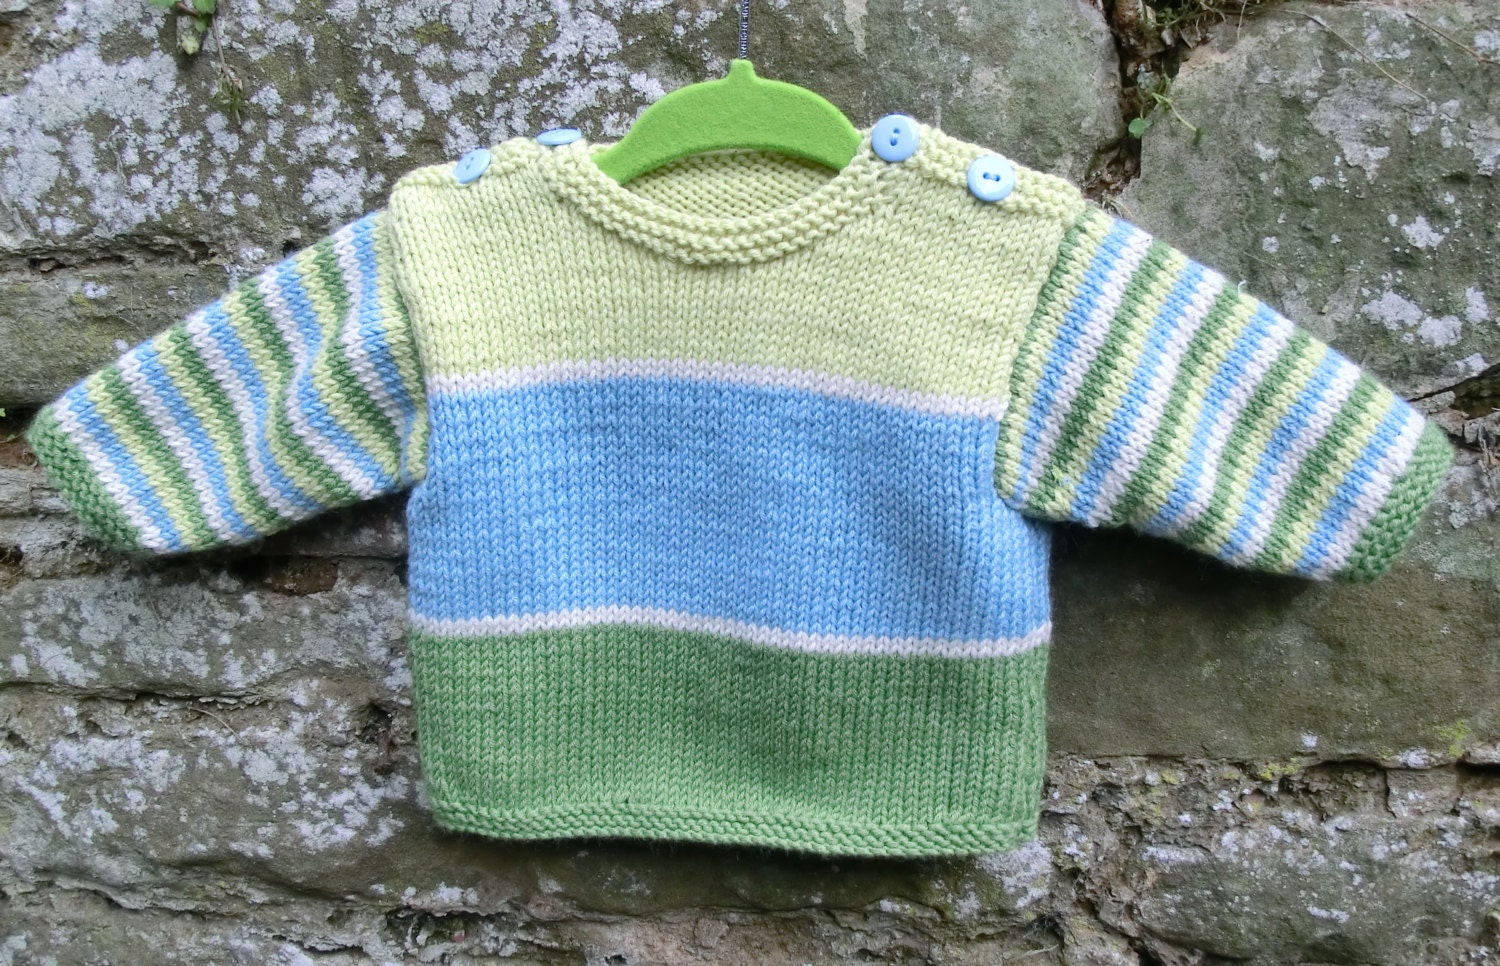 Knitting Designs For Baby Sweaters : Stripy baby sweater knitting pattern pdf